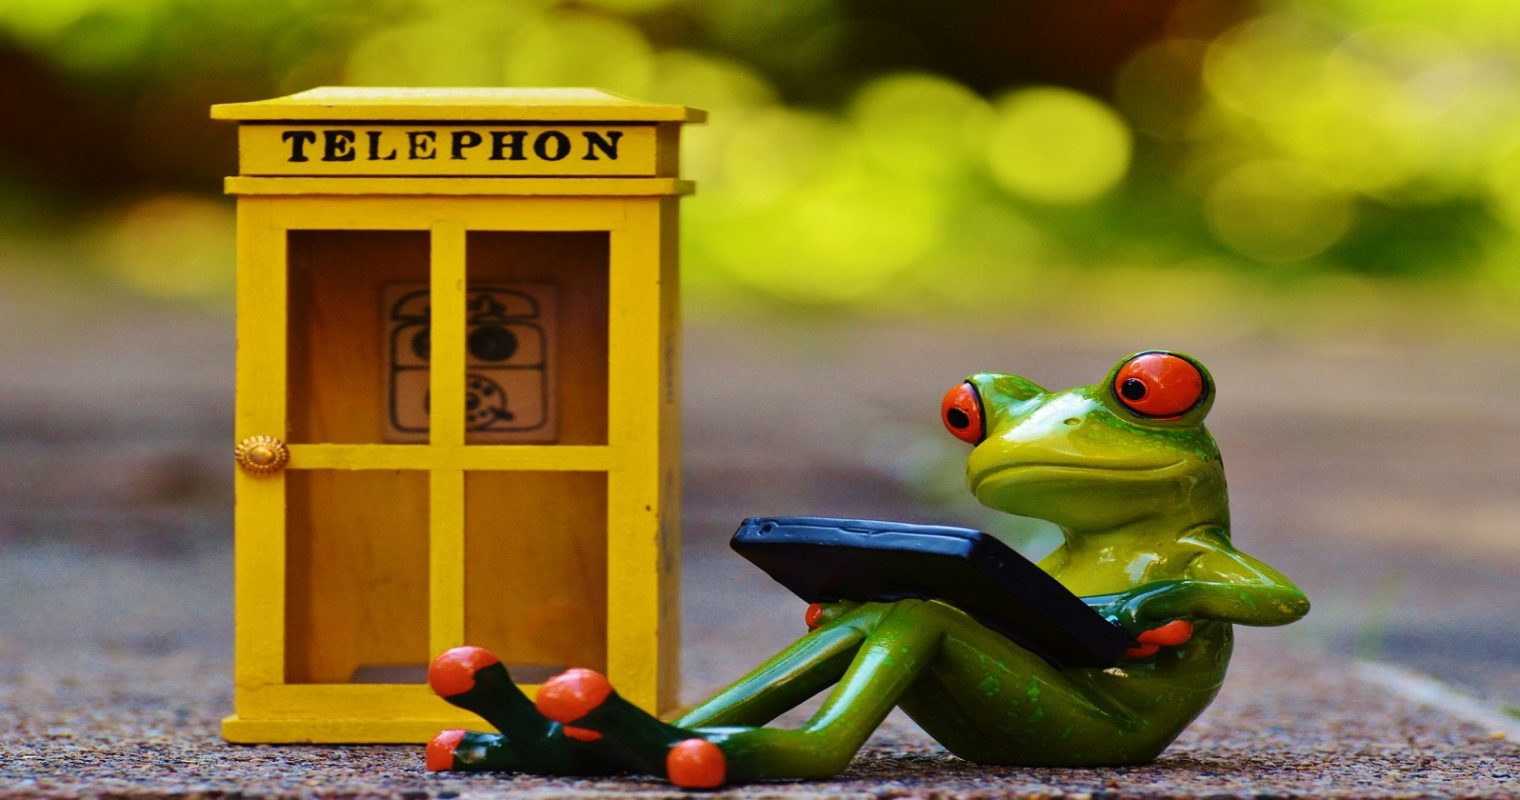 Want Big-Ticket Clients? Stop Blogging & Start Calling